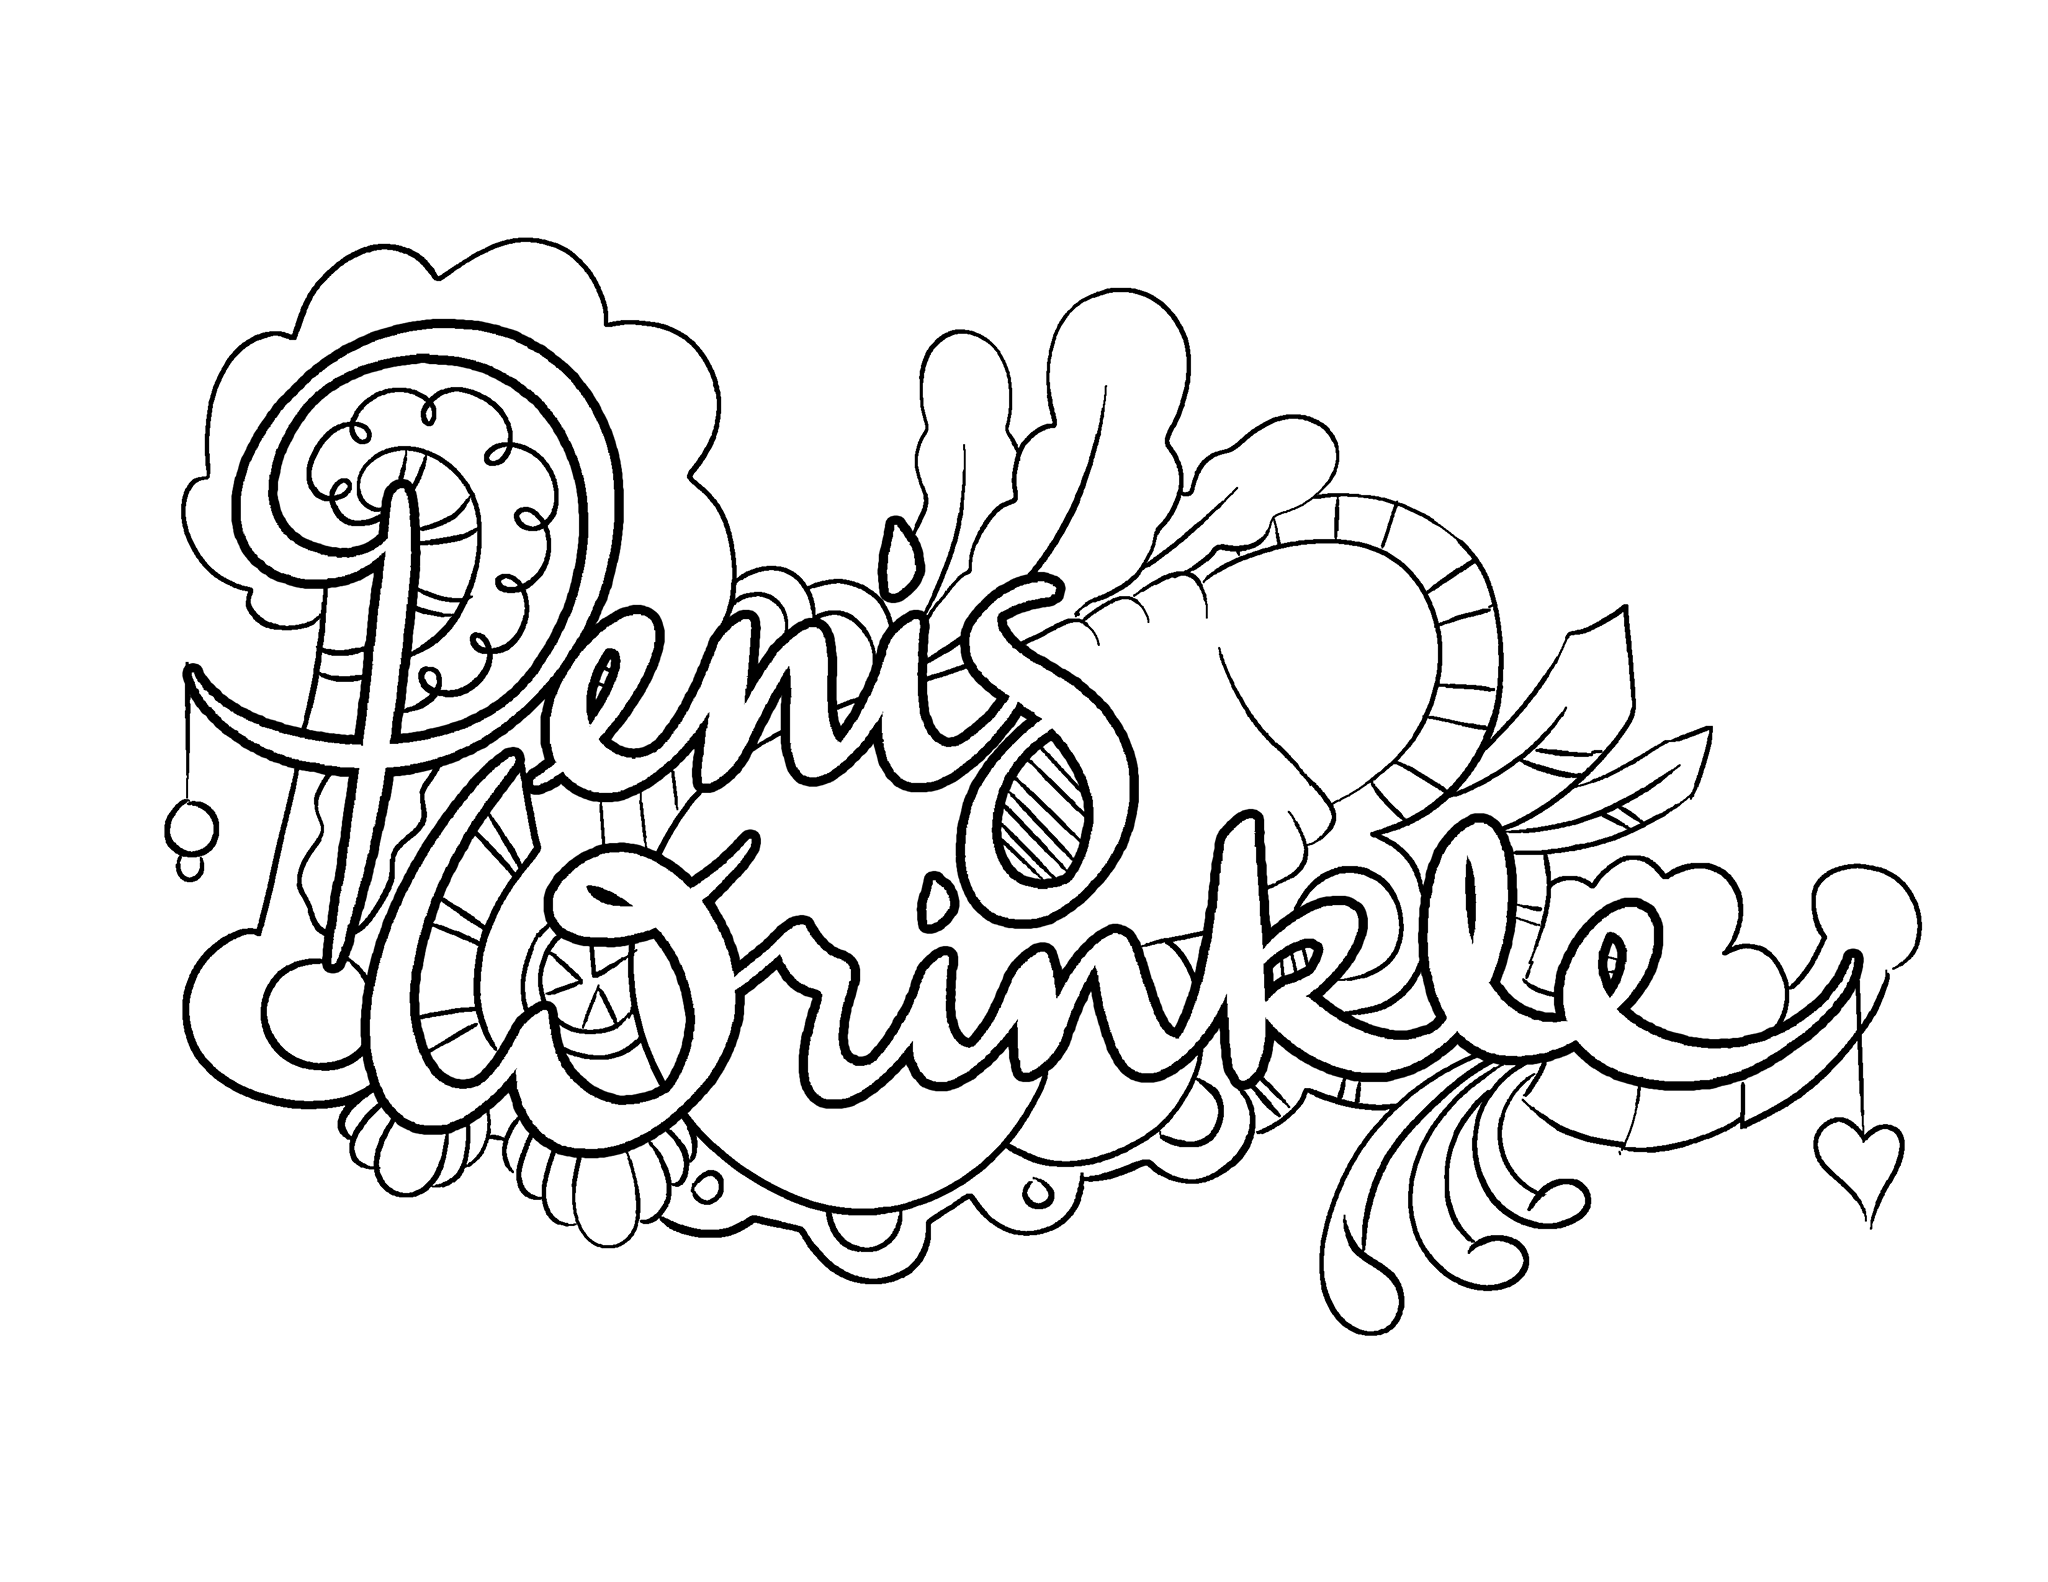 penis wrinkle coloring page by colorful language posted with - Penis Coloring Book